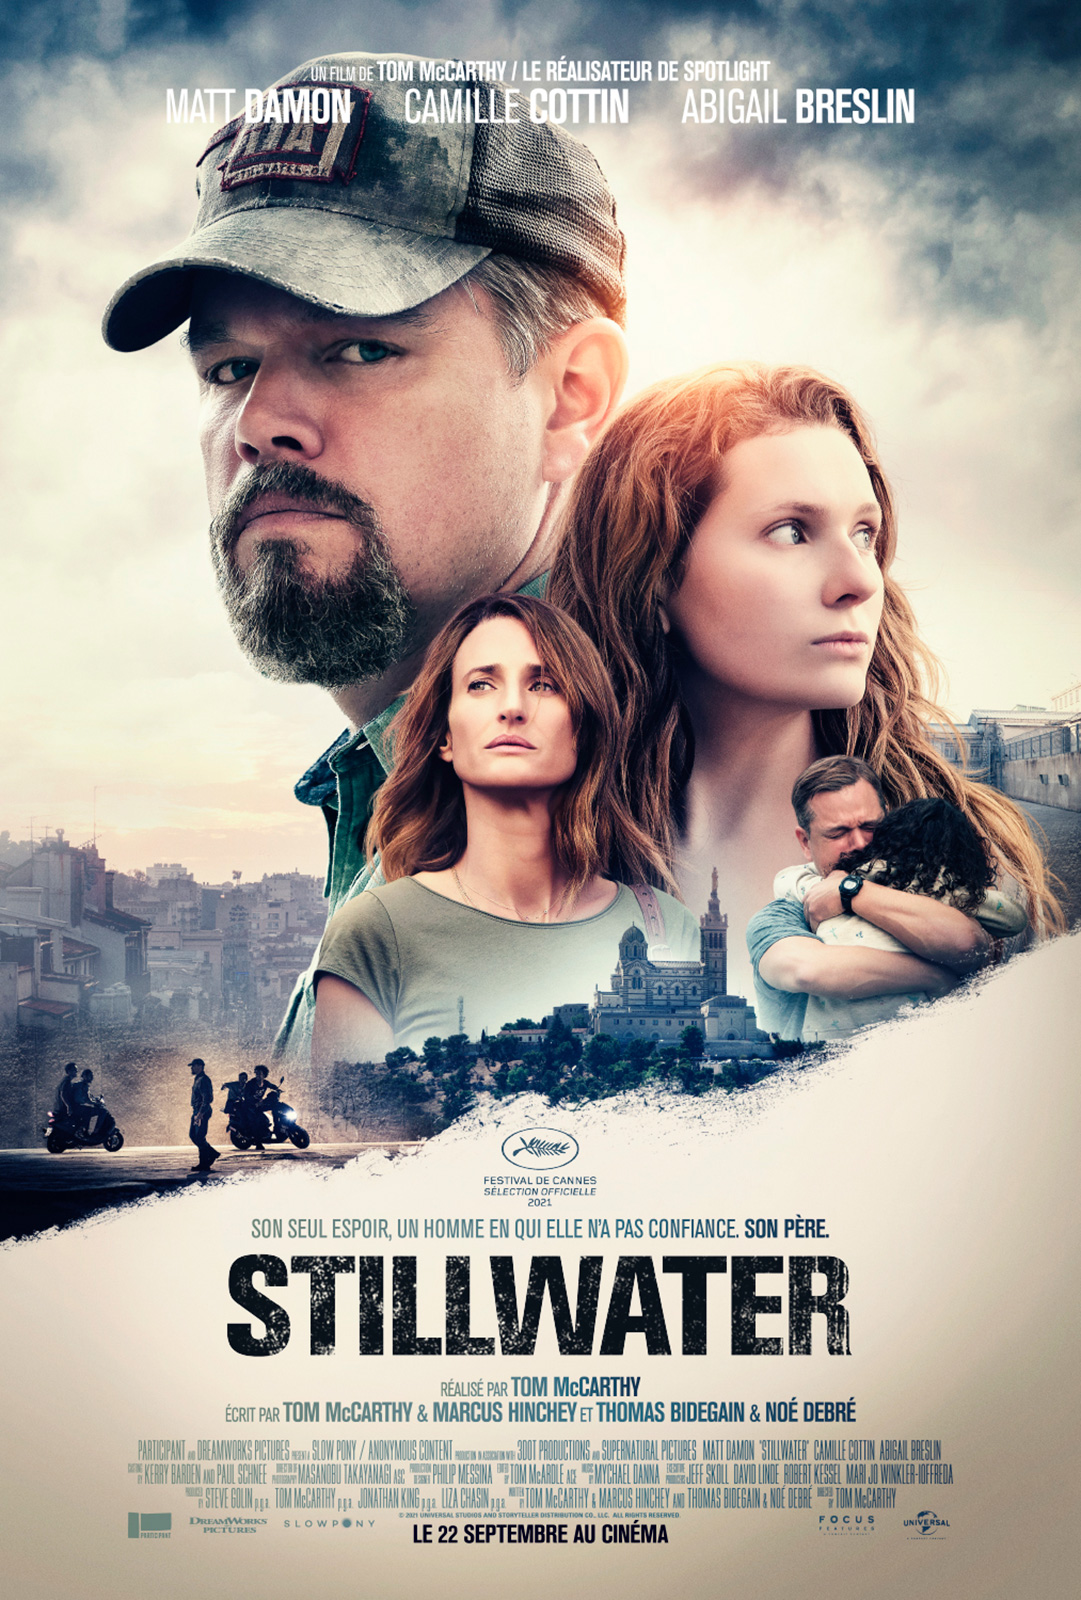 Download Stillwater (2021) Tamil Dubbed (Voice Over) & English [Dual Audio] WebRip 720p [1XBET] Full Movie Online On 1xcinema.com